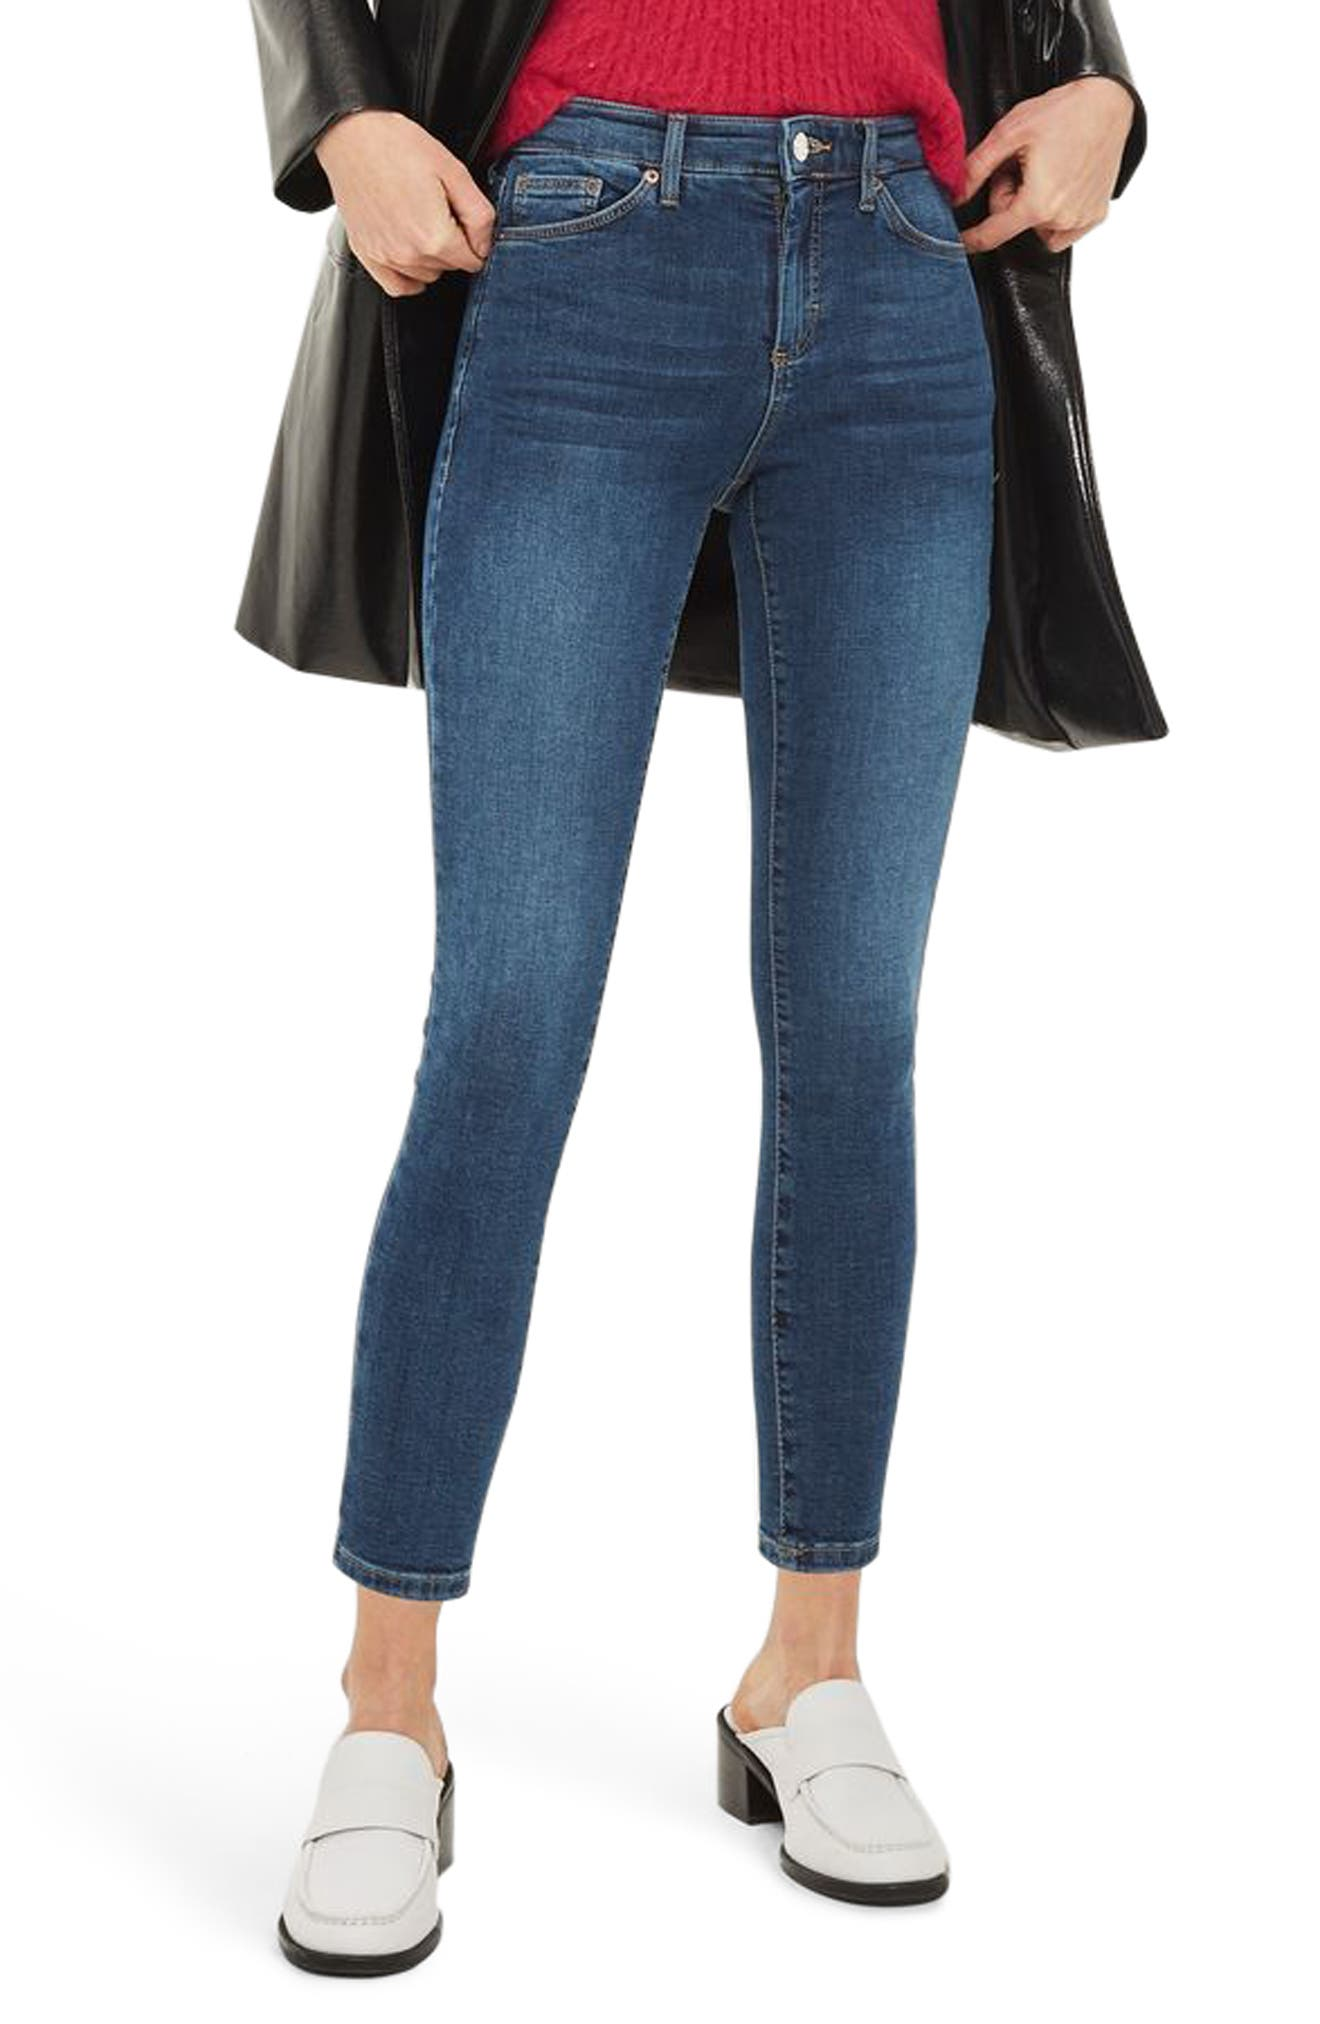 Topshop Sidney Ankle Skinny Jeans (Petite)